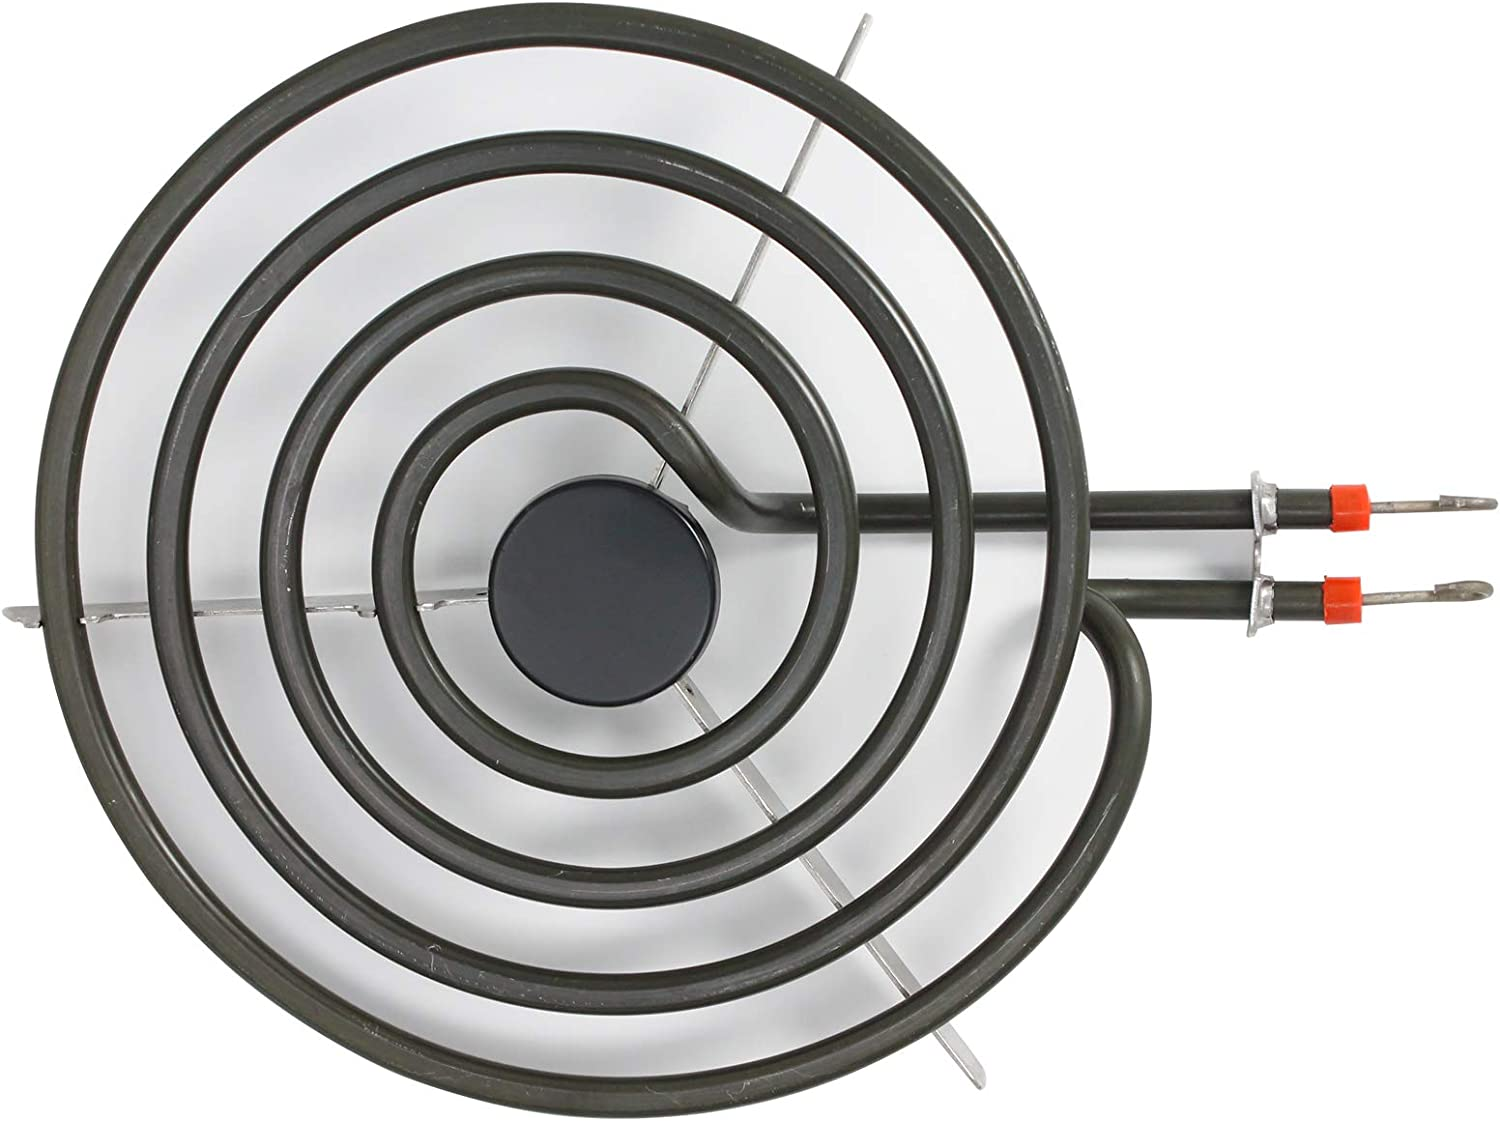 Compatible with 316442300 Range Element 316442300 8 Element Replacement for Tappan TEF351EWF